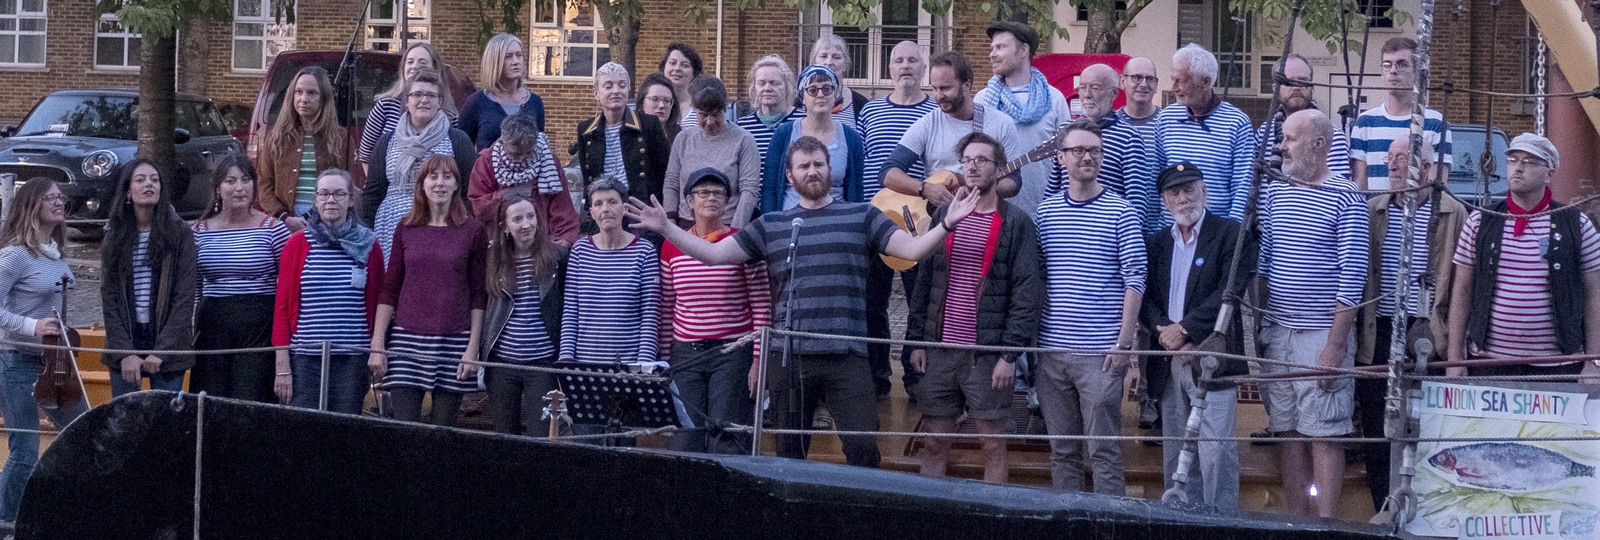 The London Sea Shanty Collective sing on the Thames barge Melissa at Greenland Dock